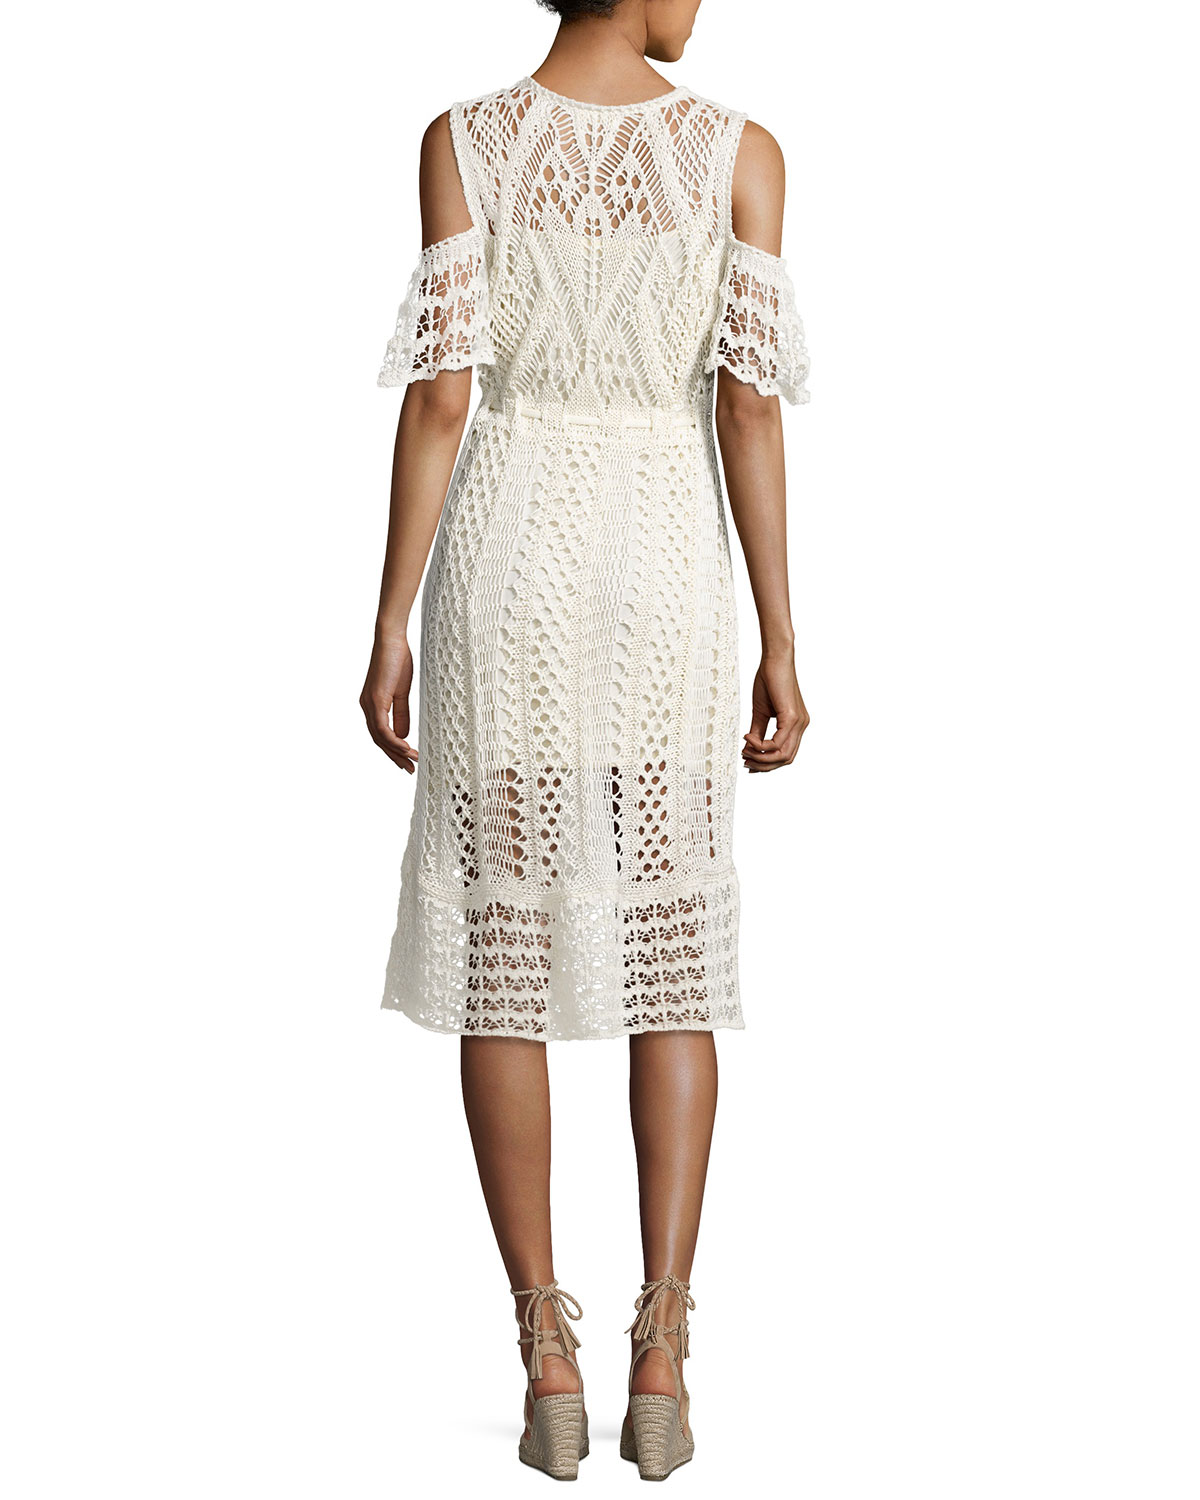 Cheap Sale Ebay See By Chloé Woman Cold-shoulder Macramé Cotton Dress White Size S See By Chloé Free Shipping Really Buy Cheap Cheapest Price Great Deals Online X9VxVkjcd